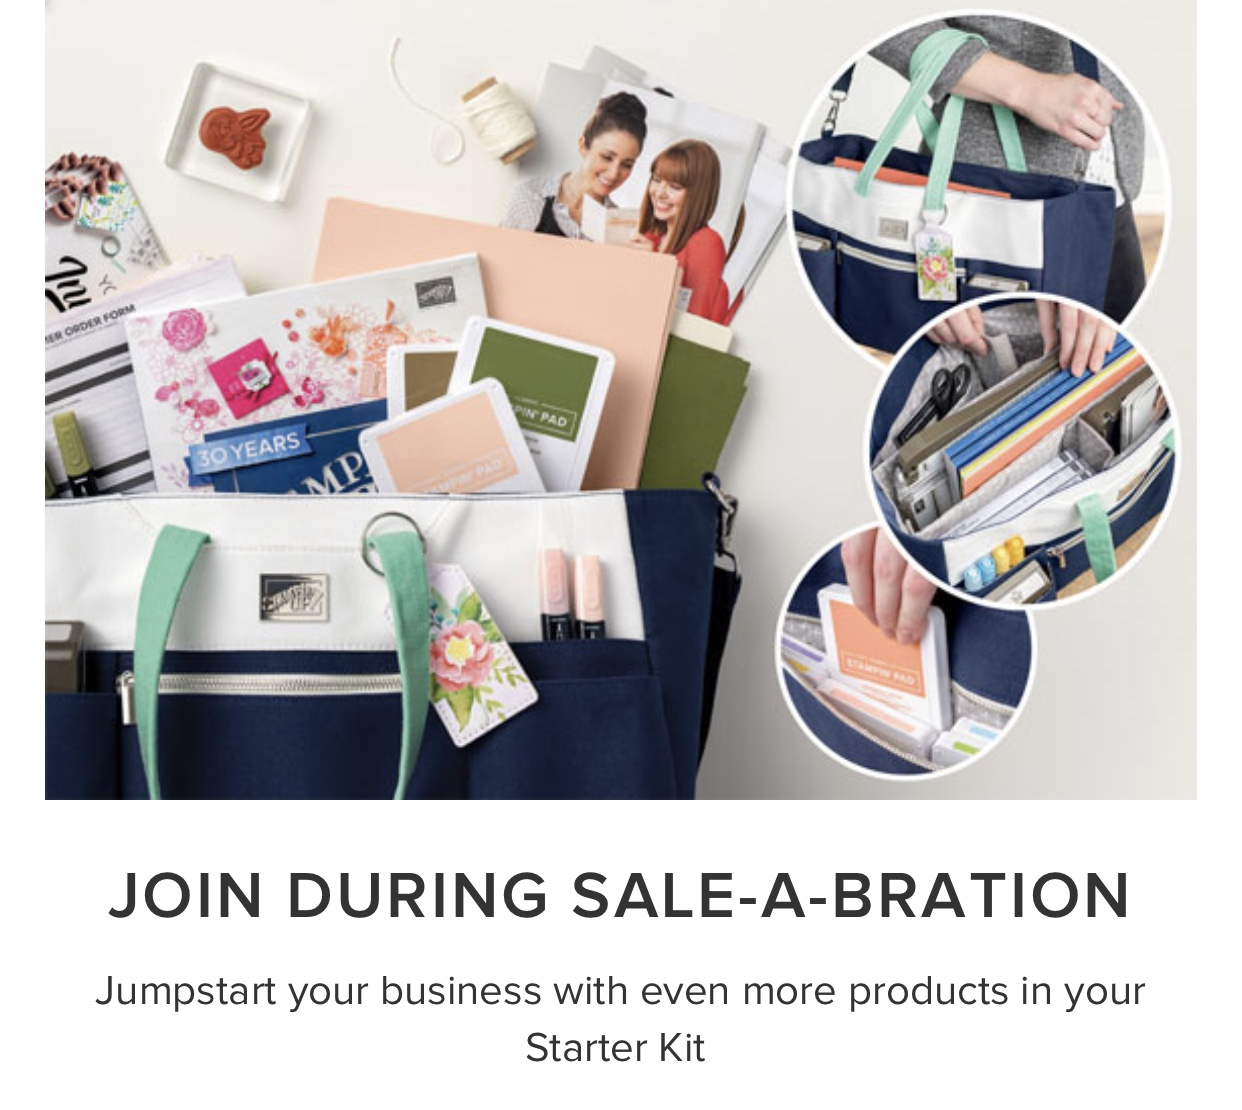 It's time to Sale-a-brate!